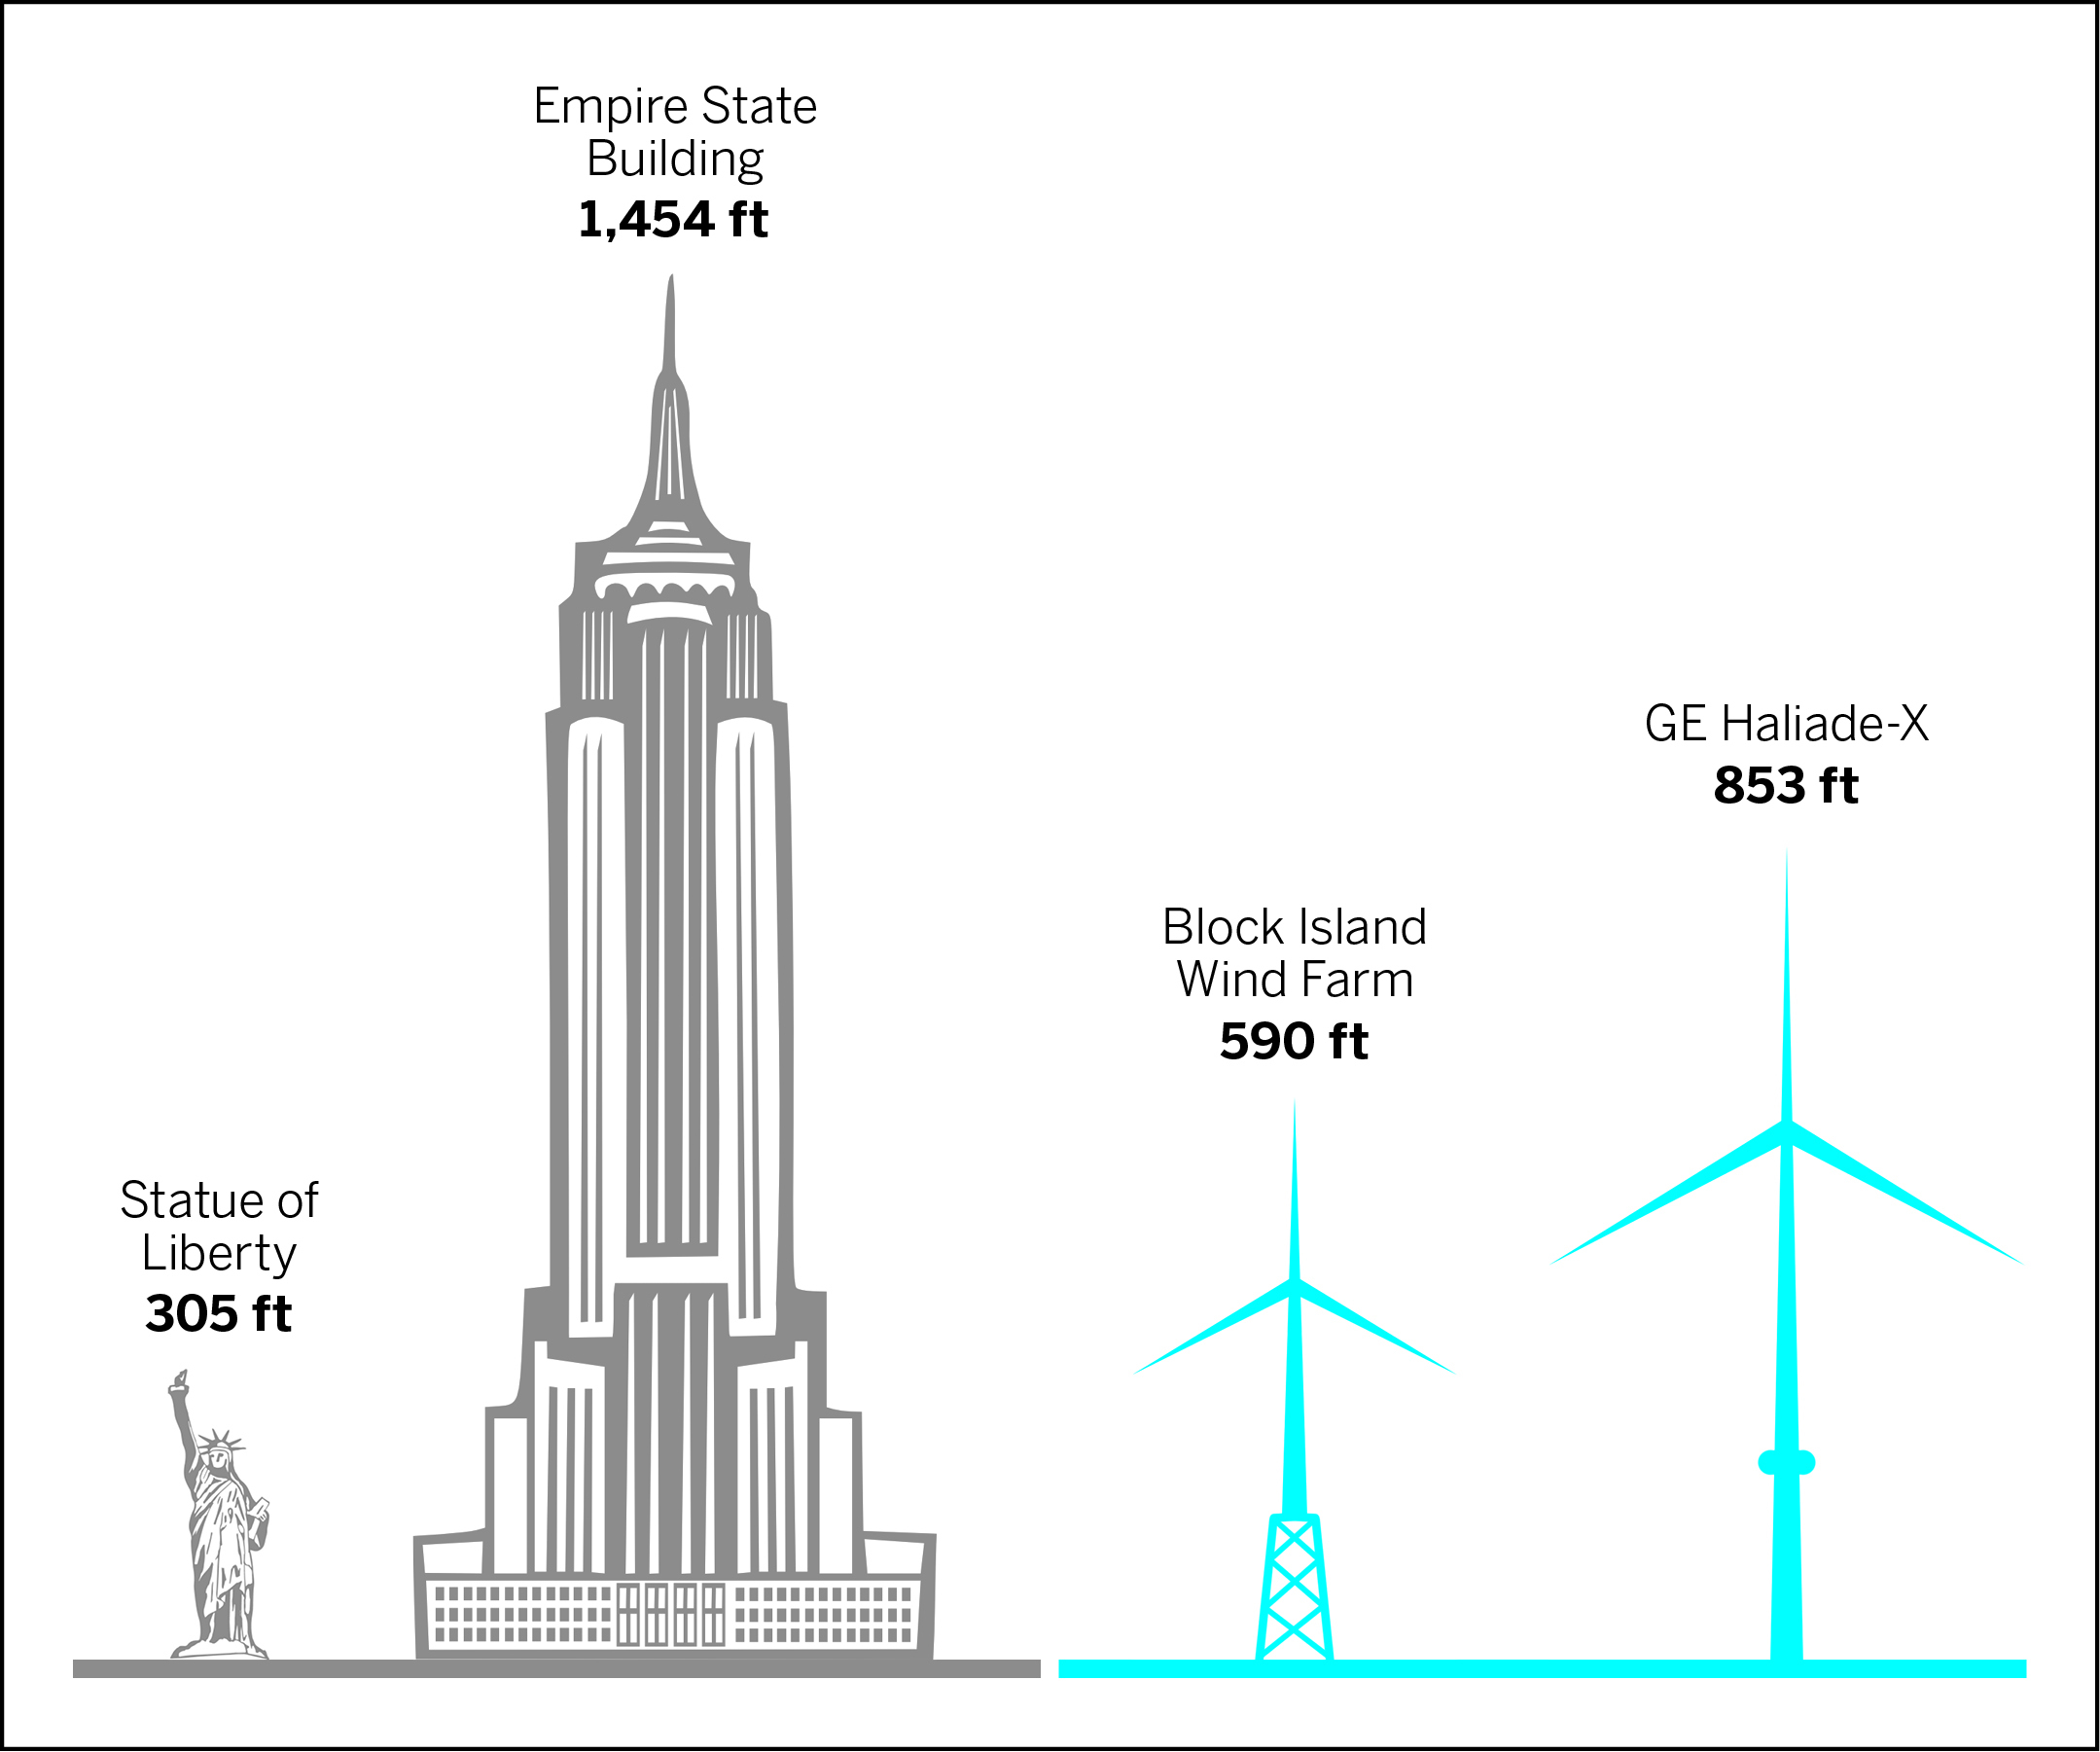 Ørsted has announced that the South Fork Wind Farm will be comprised of no more than 12 turbines, rather than as many as 15, as originally planned, but the turbines will be much larger than the ones built off Block Island in 2016 and visible from Montauk's shores on clear days.